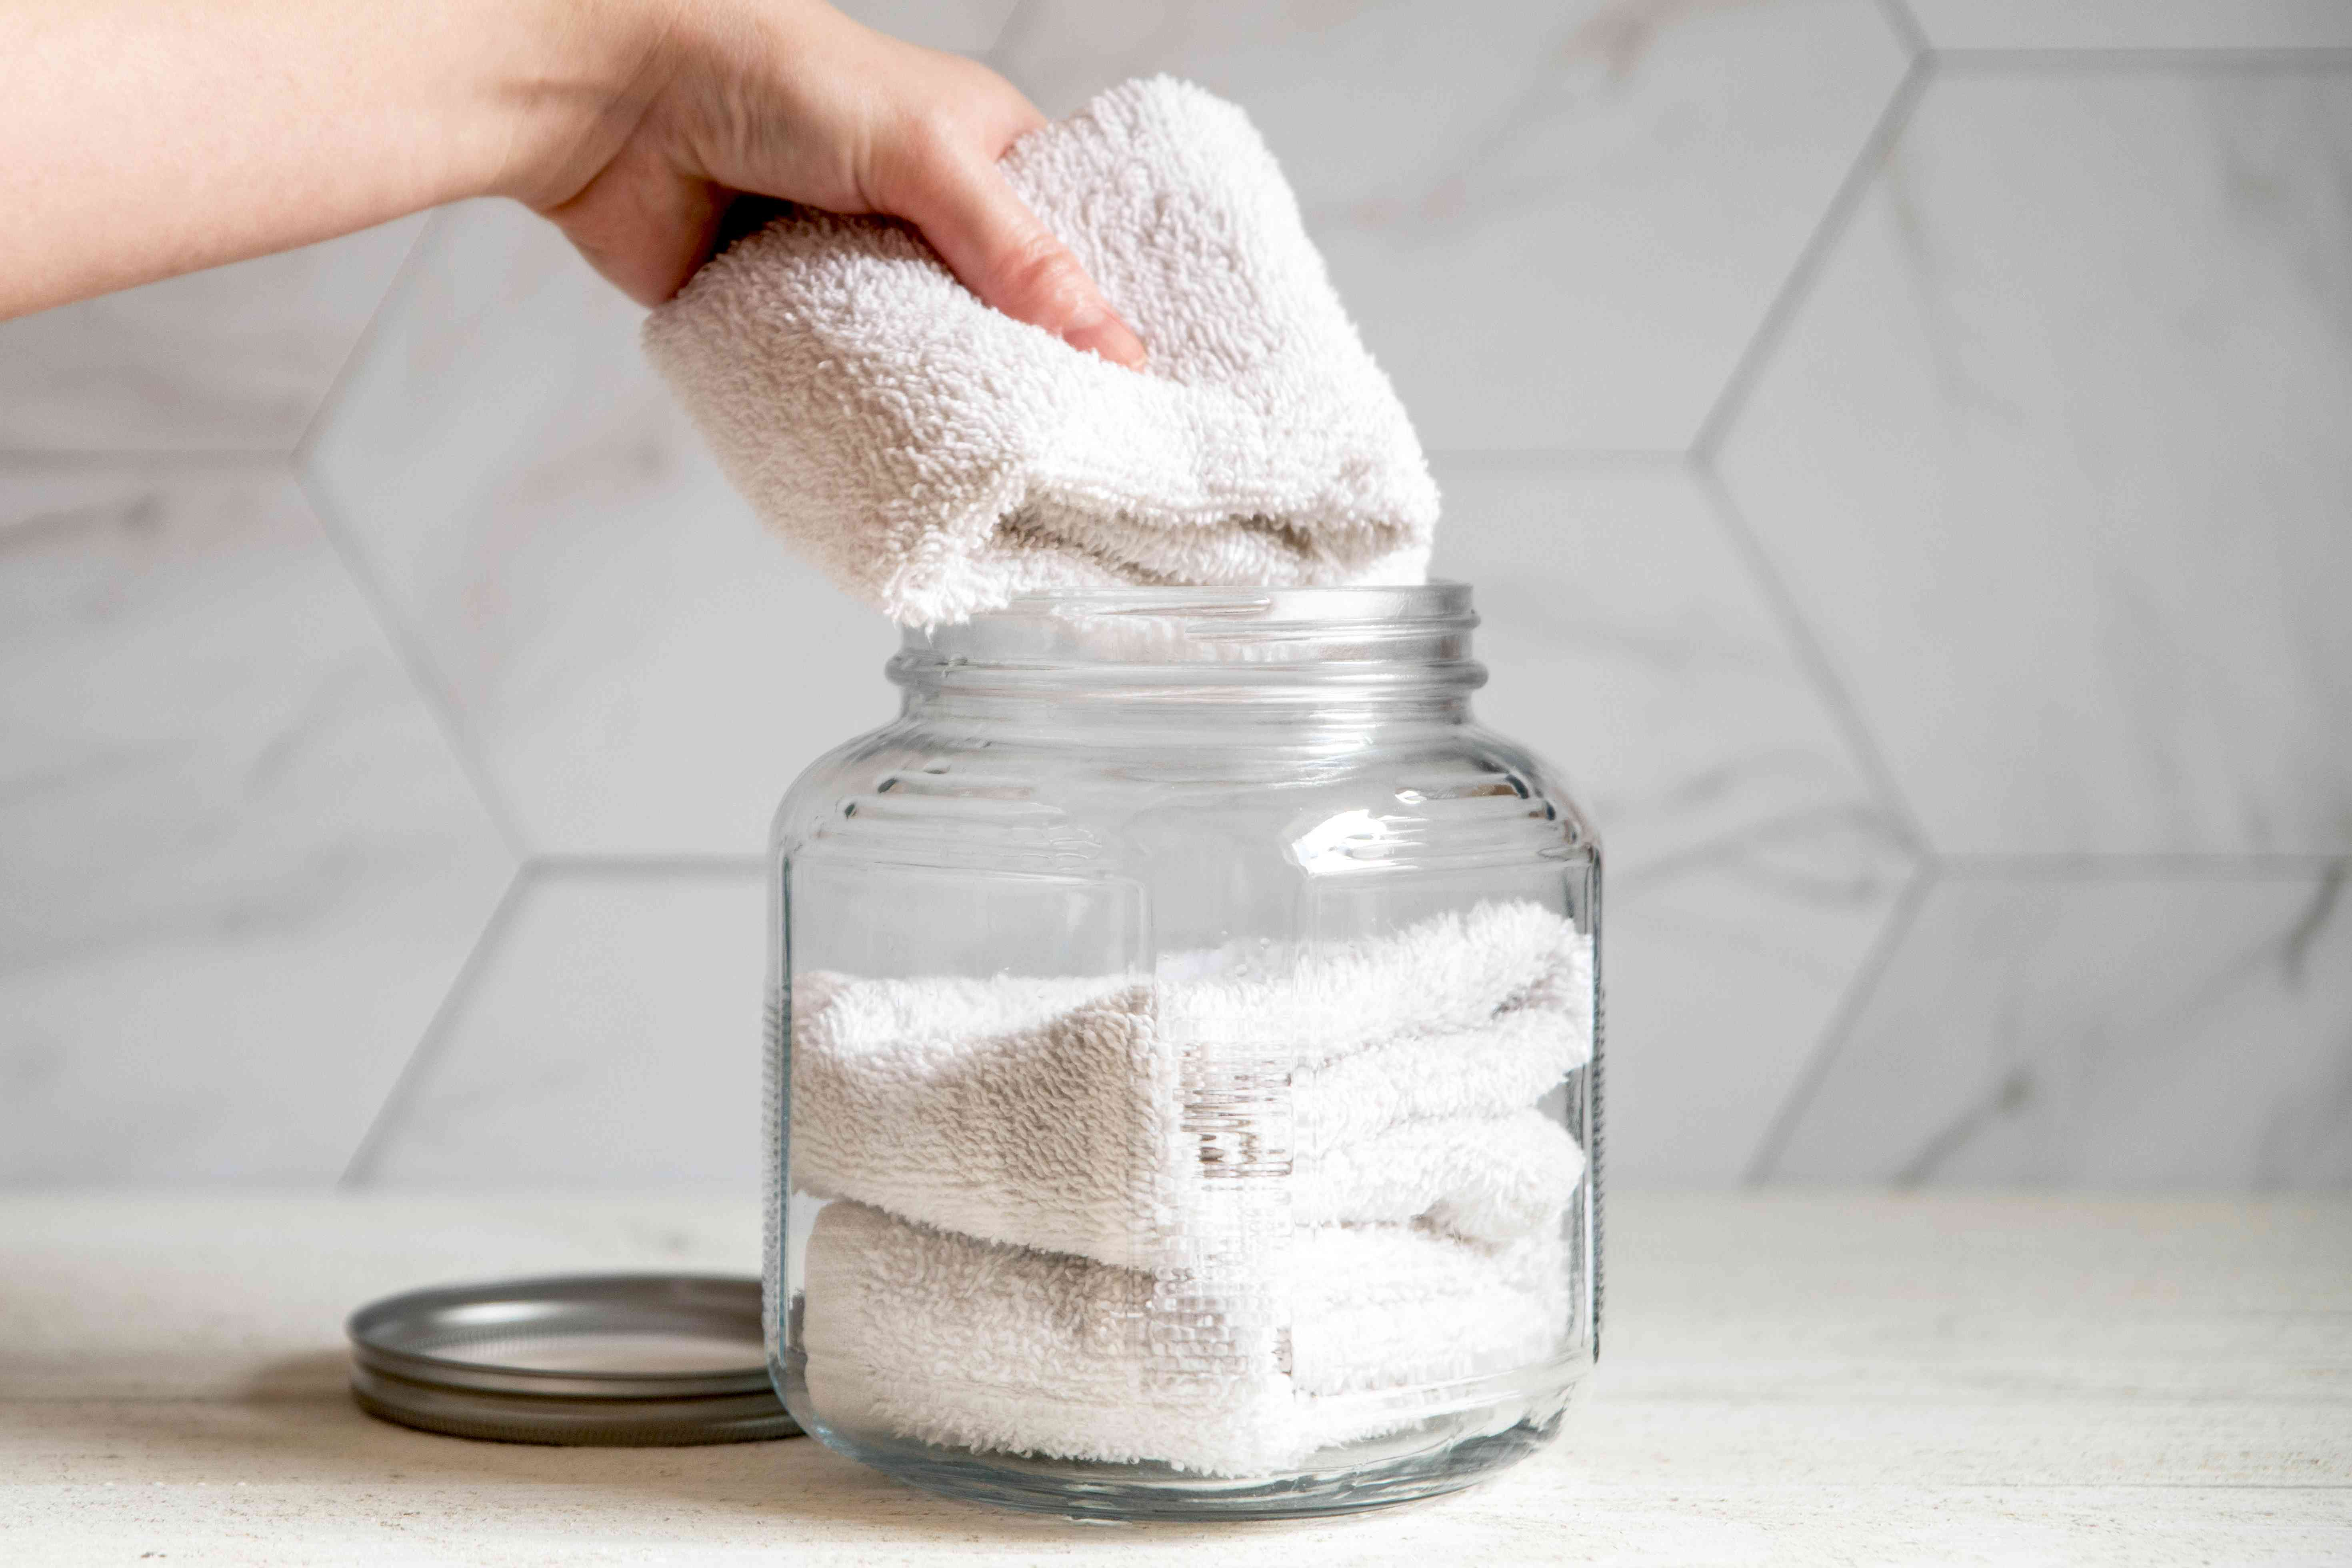 Folded cloth placed back in glass jar